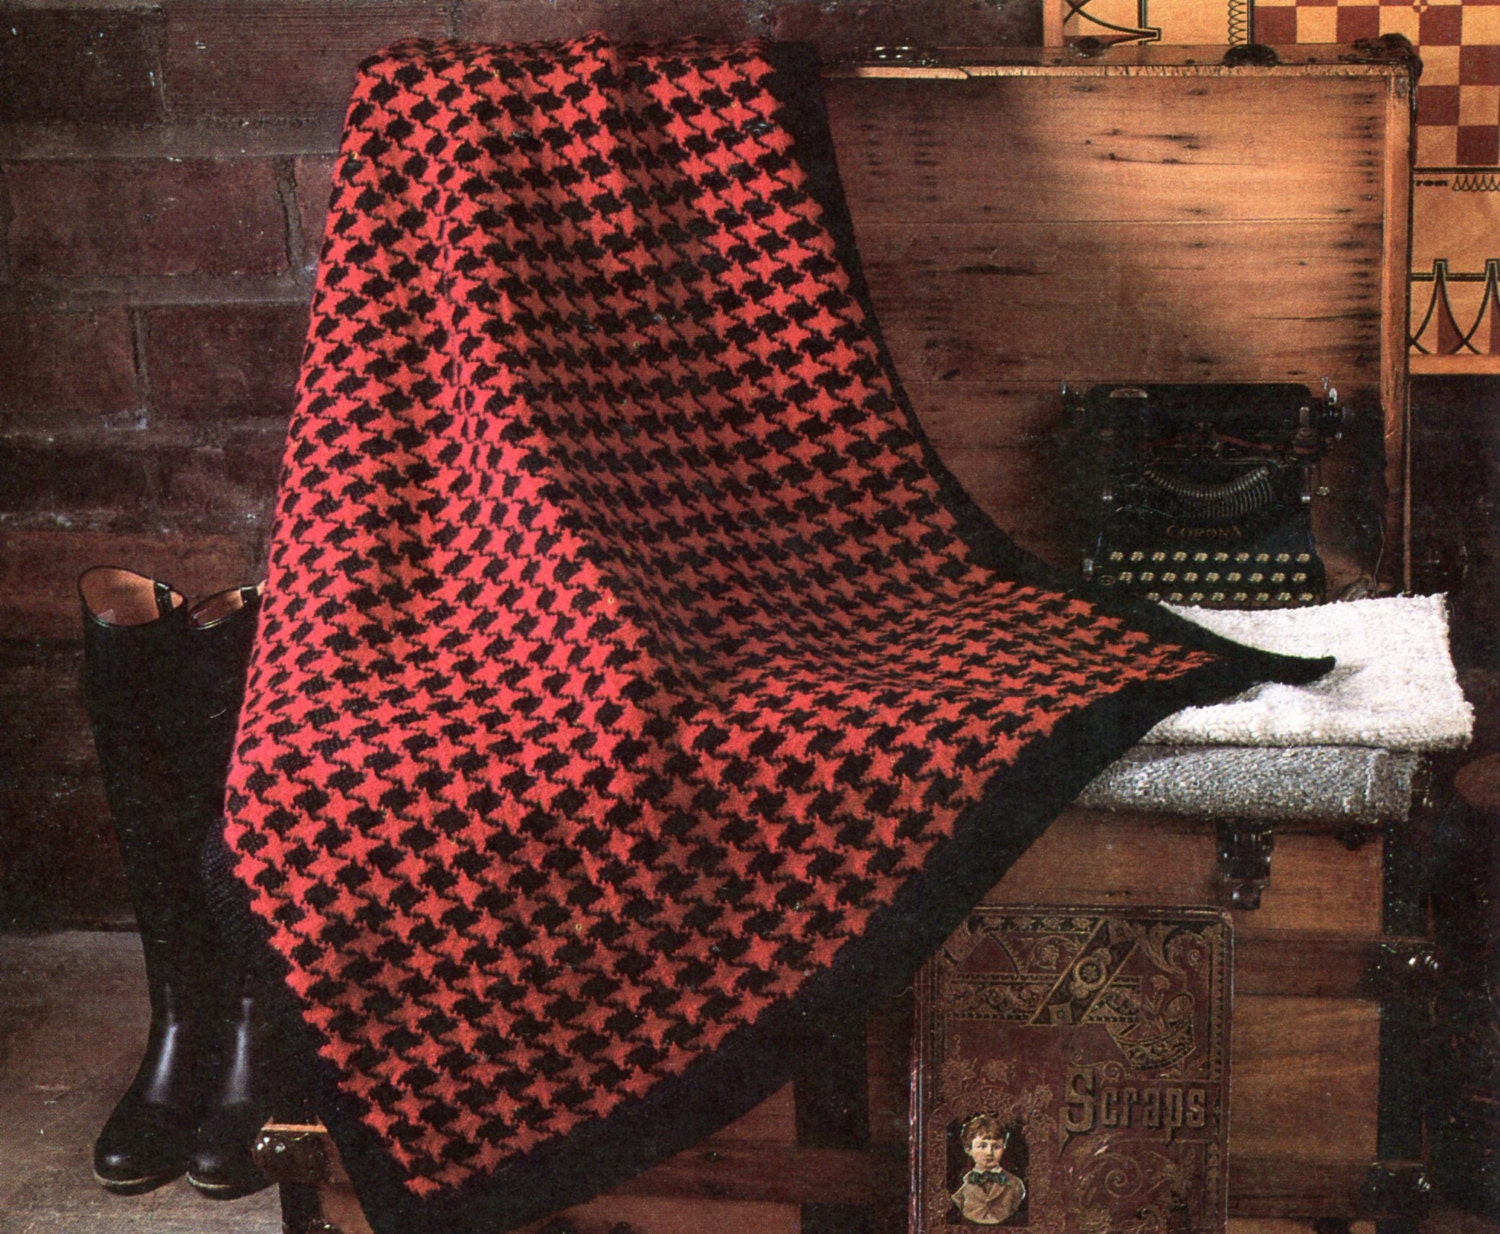 Gorgeous Houndstooth Knit Blanket Pattern